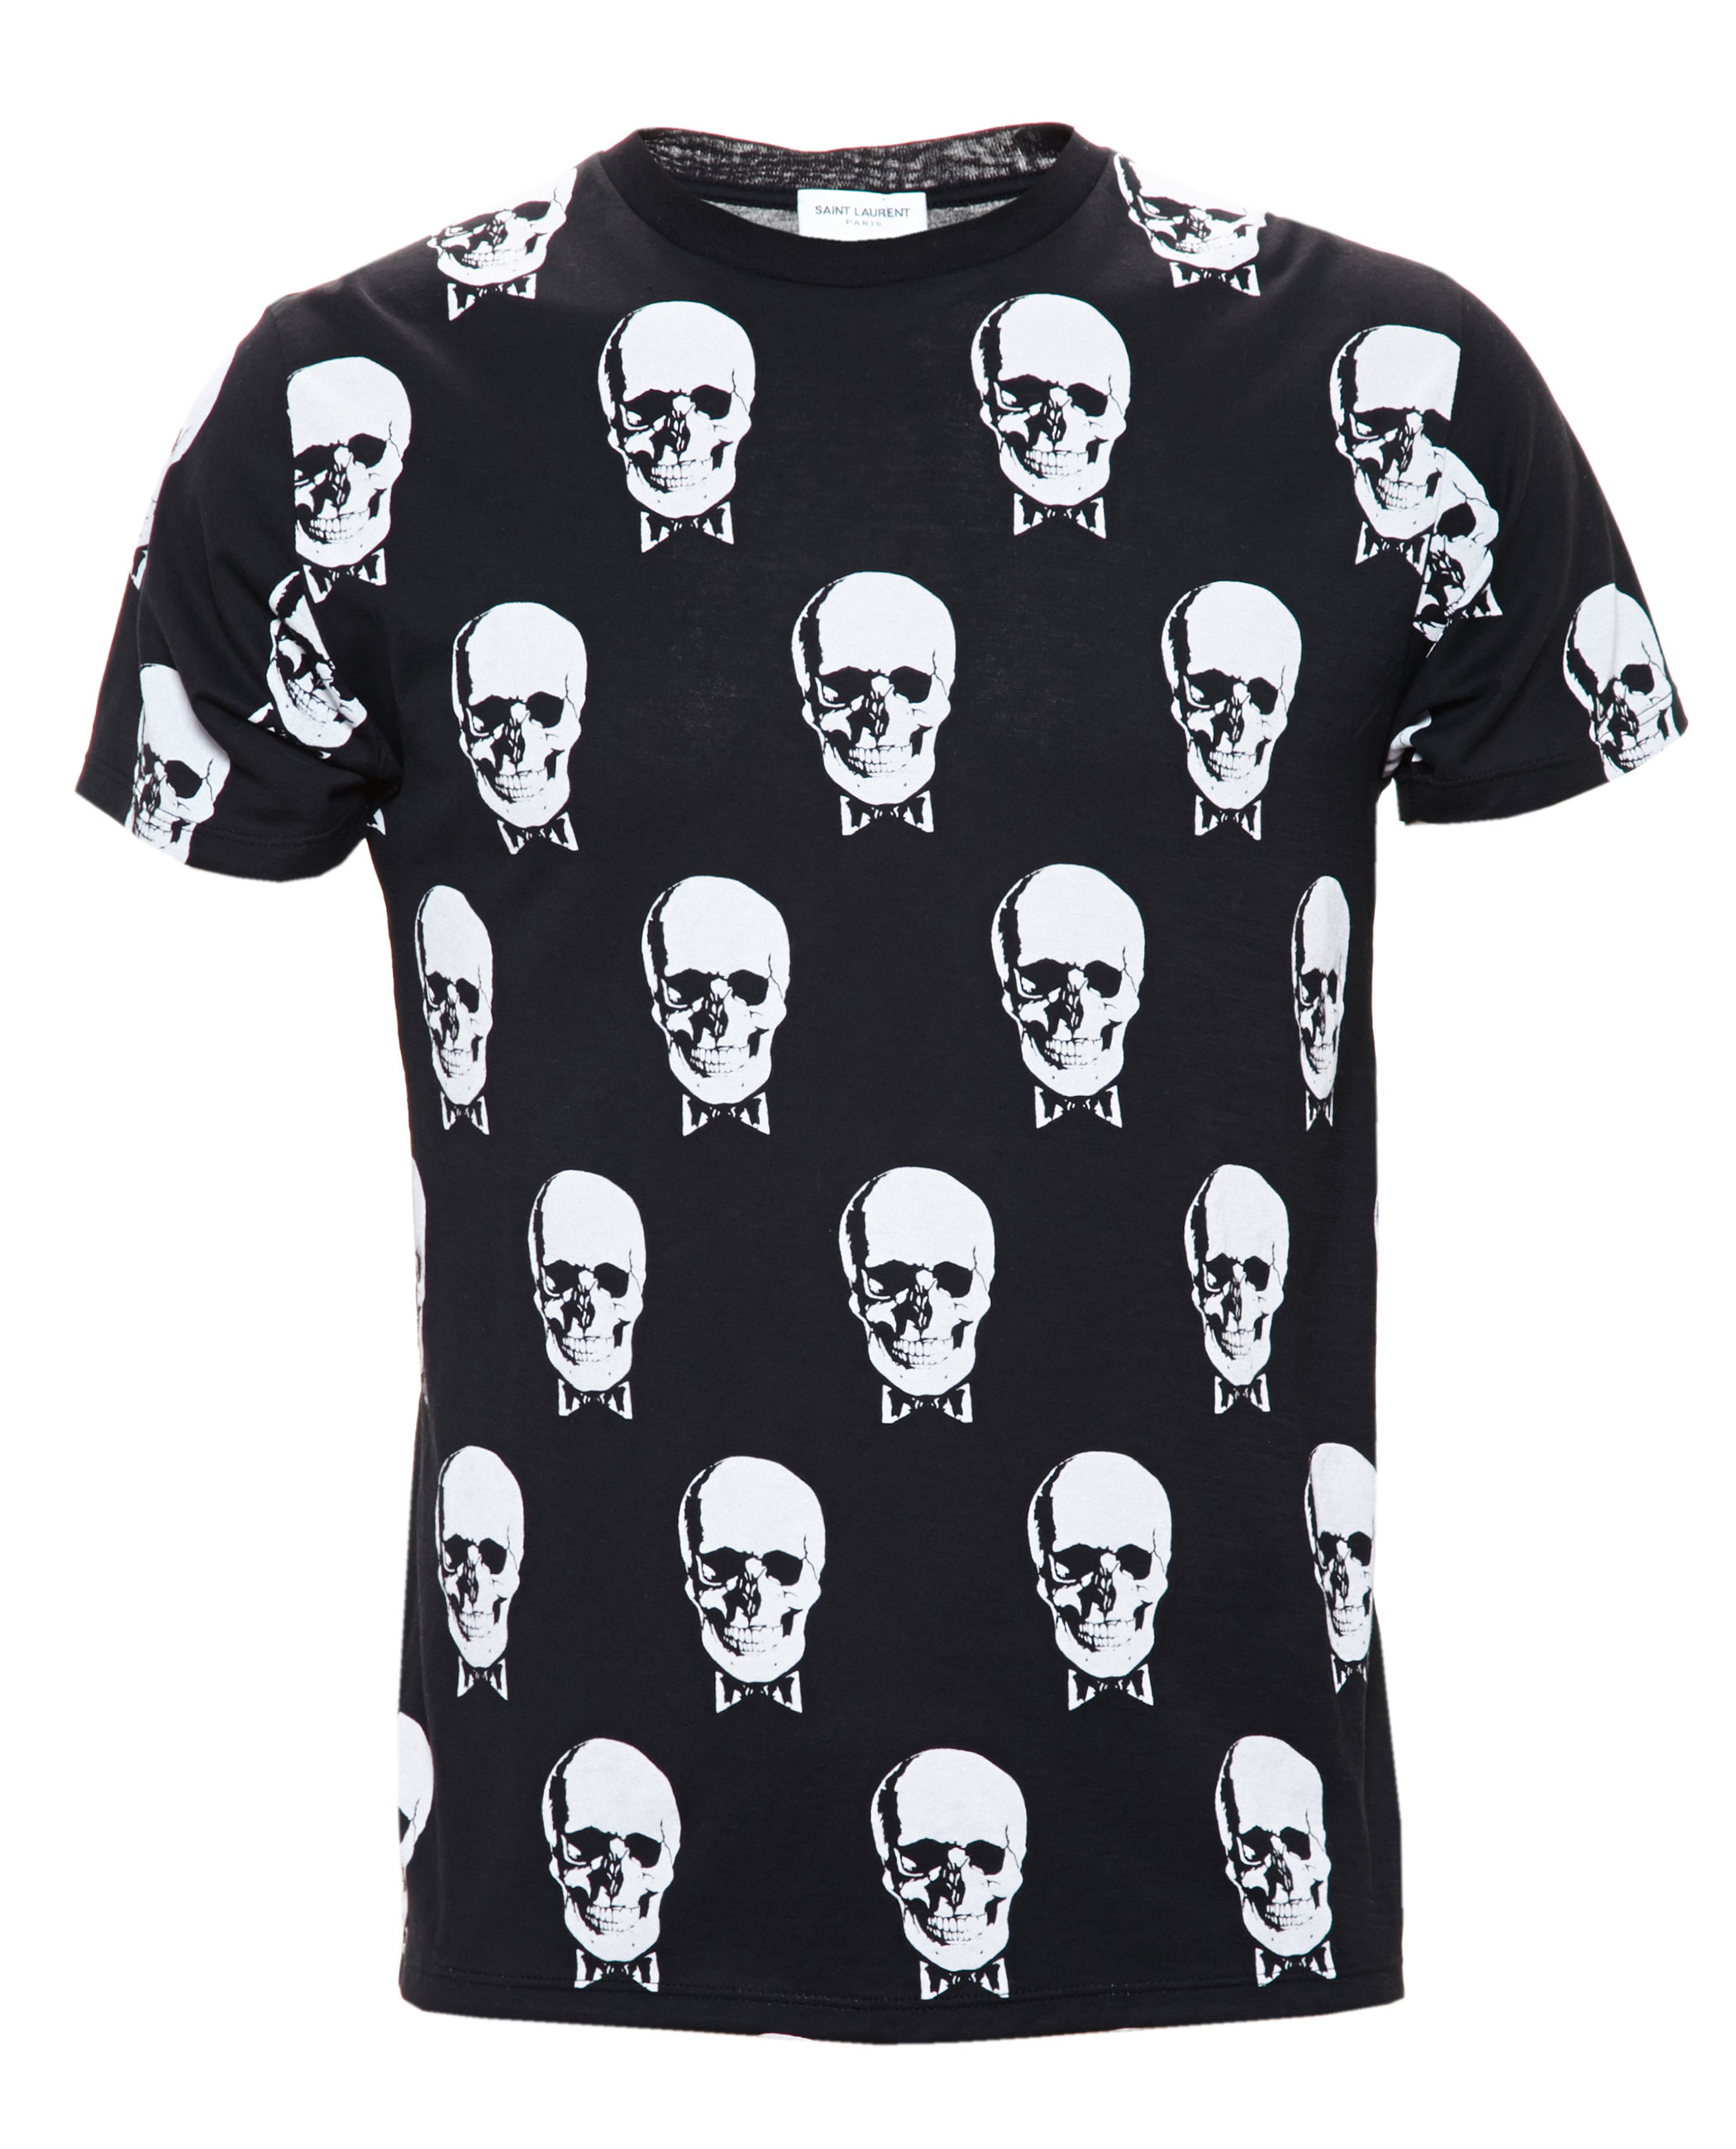 ad11e574a Saint Laurent Skull-print Cotton-jersey T-shirt in Black for Men - Lyst